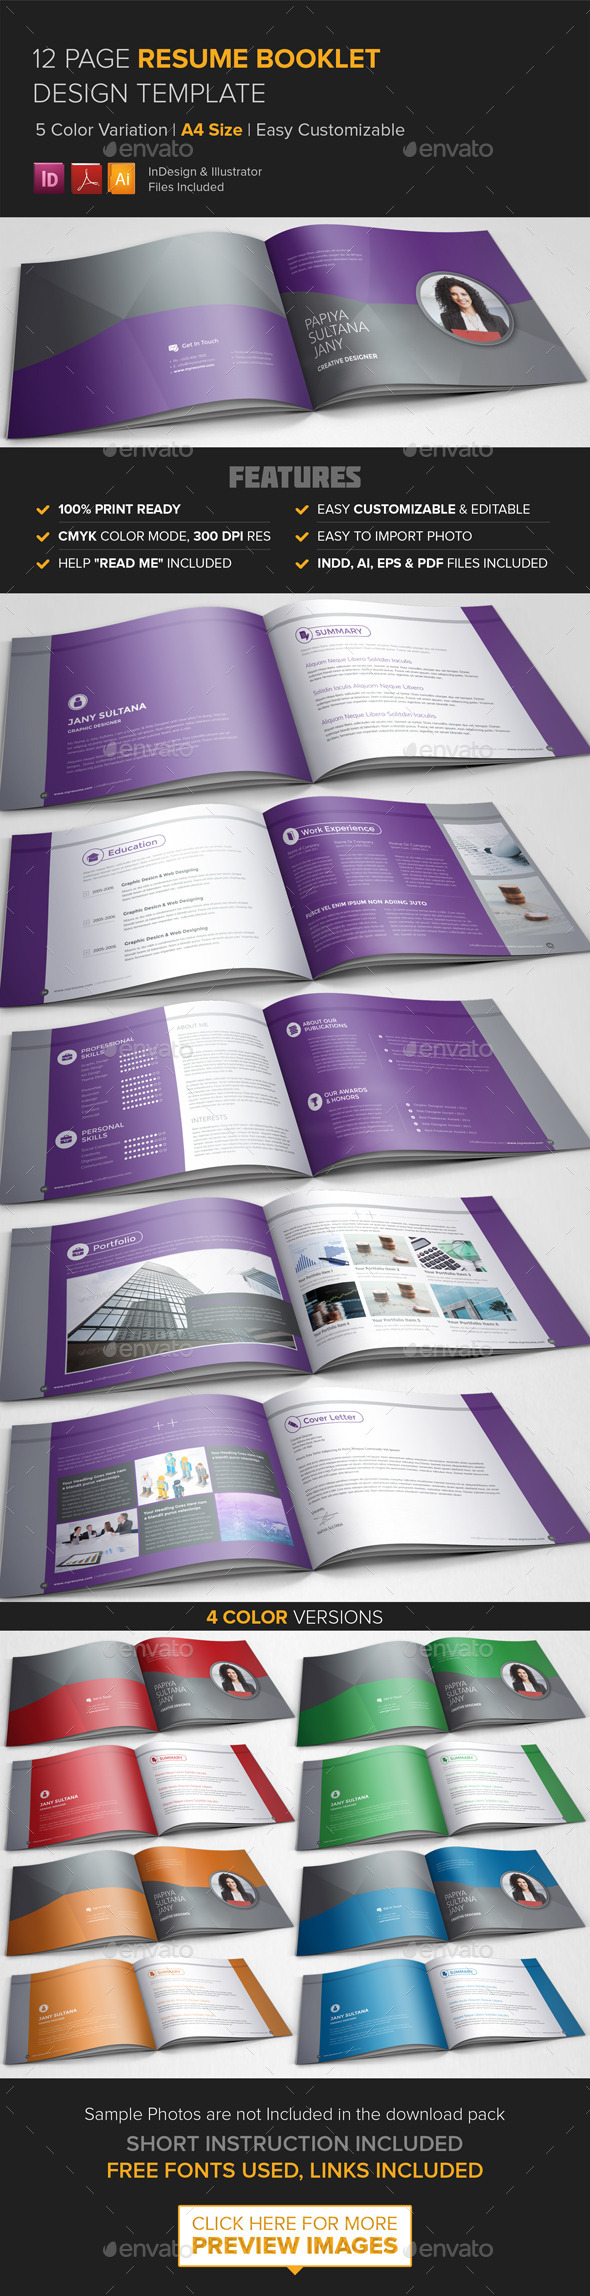 Resume Booklet Design (InDesign)